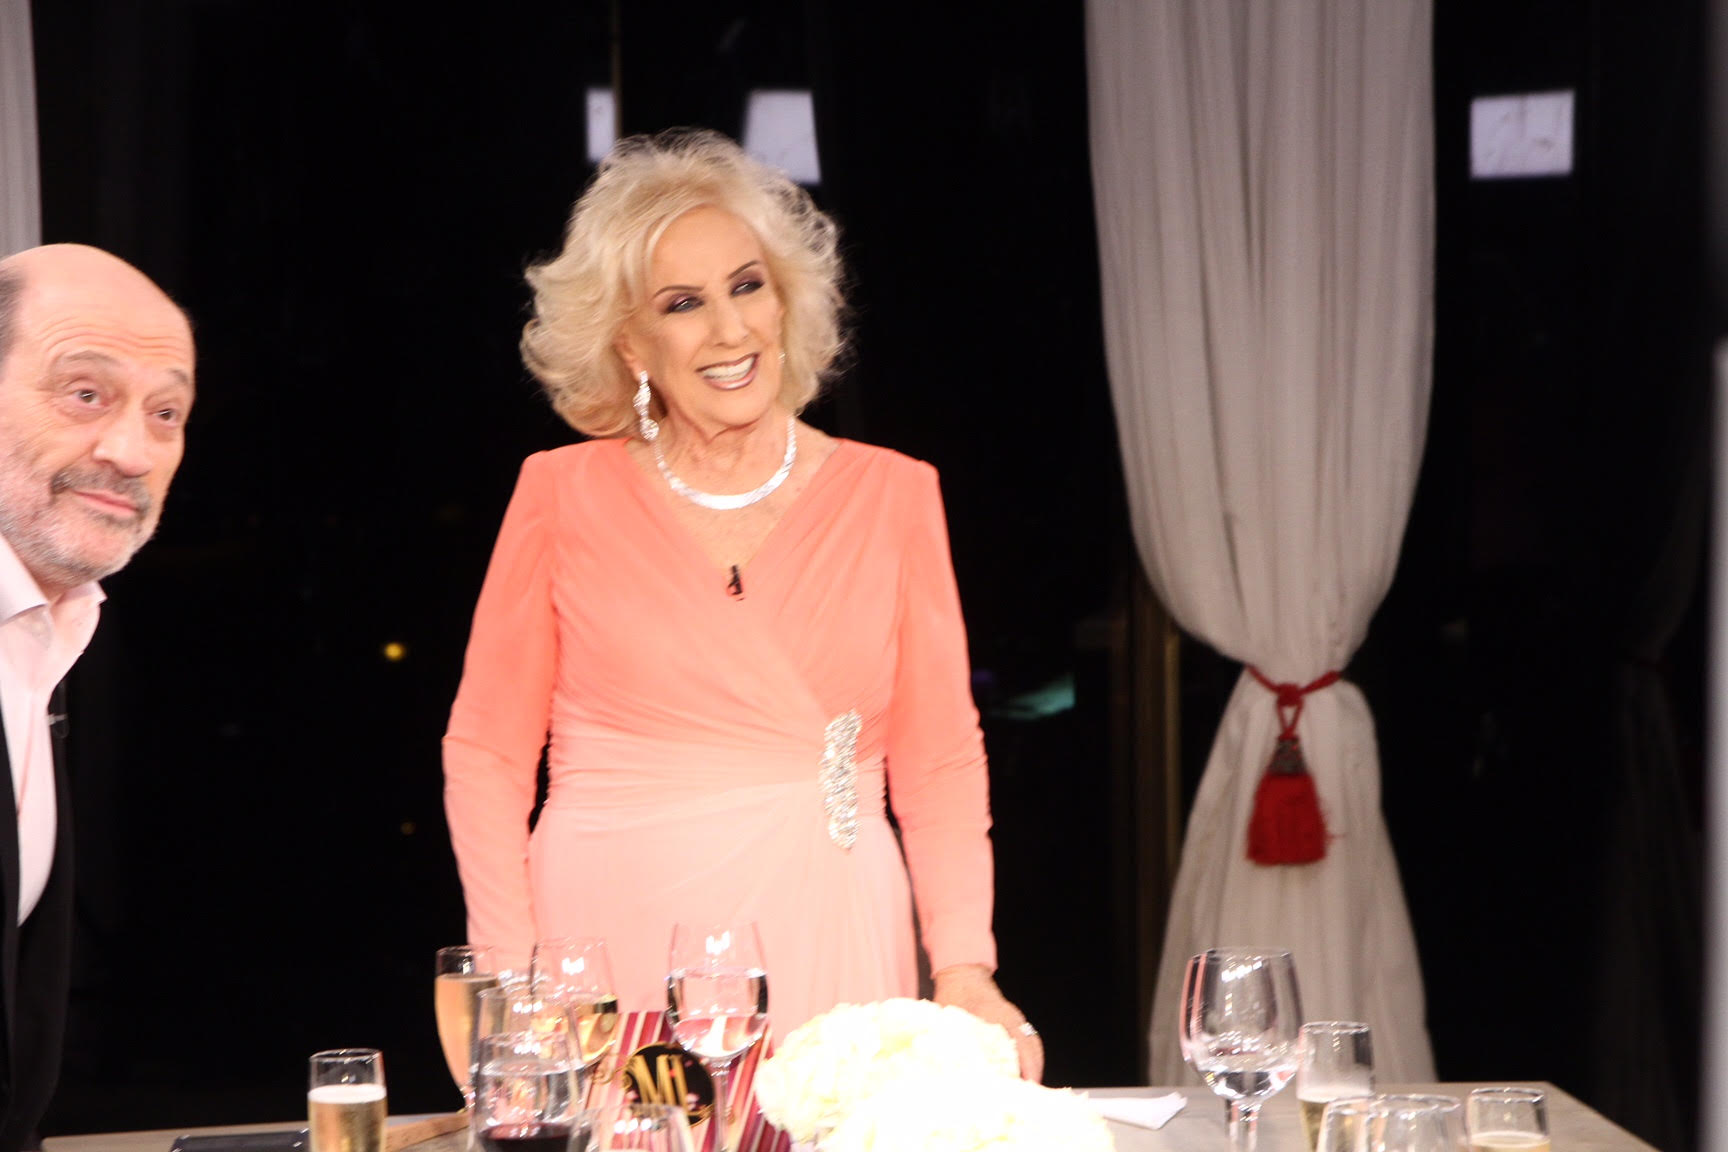 Mirtha Legrand, una firme defensora de Mar del Plata